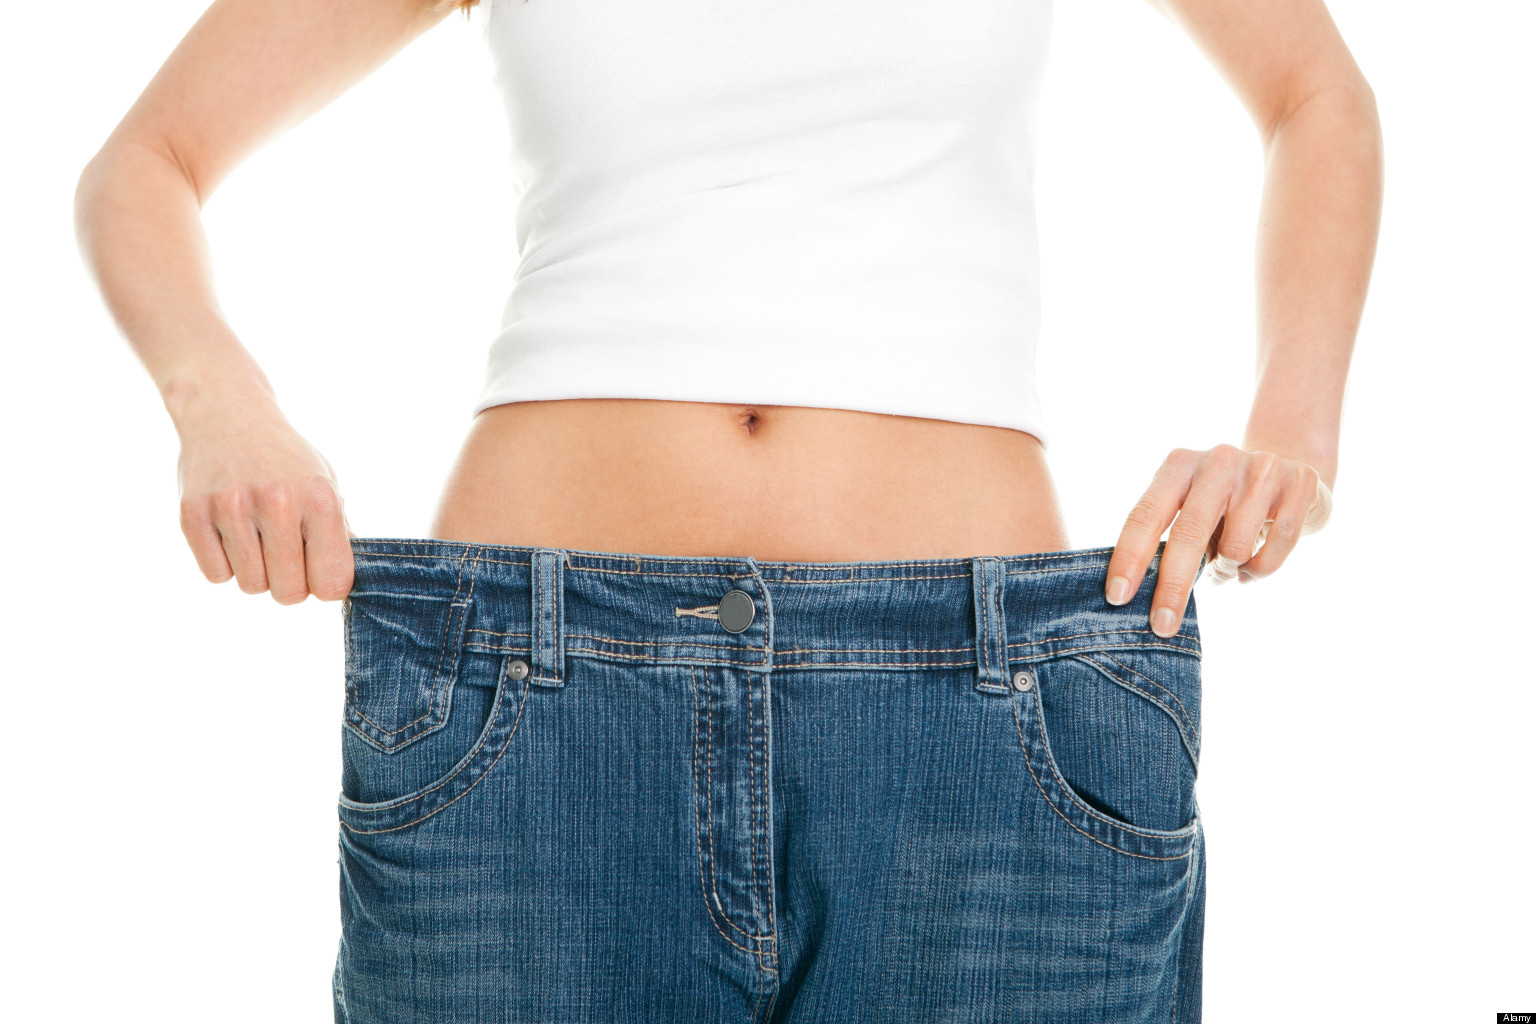 Slim woman pulling oversized jeans. Weight loss concept. Isolated on white